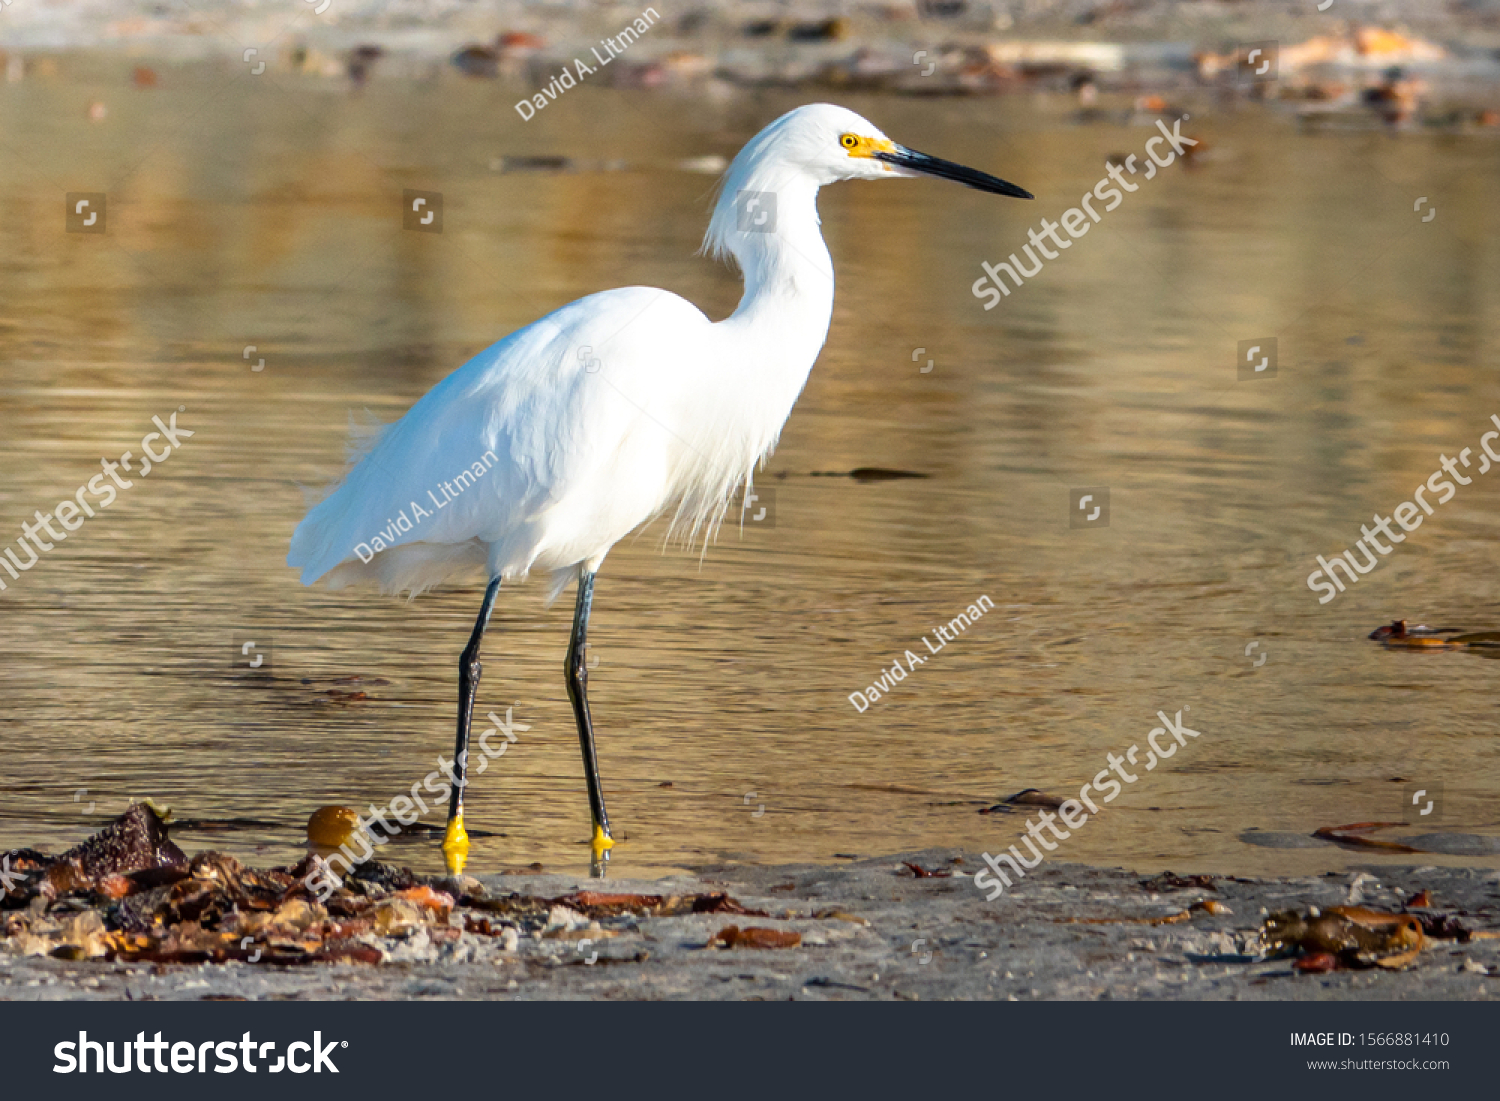 stock-photo-a-snowy-egret-egretta-thula-in-full-breeding-plumage-wades-in-shallow-water-of-a-tide-pool-at-the-1566881410.jpg